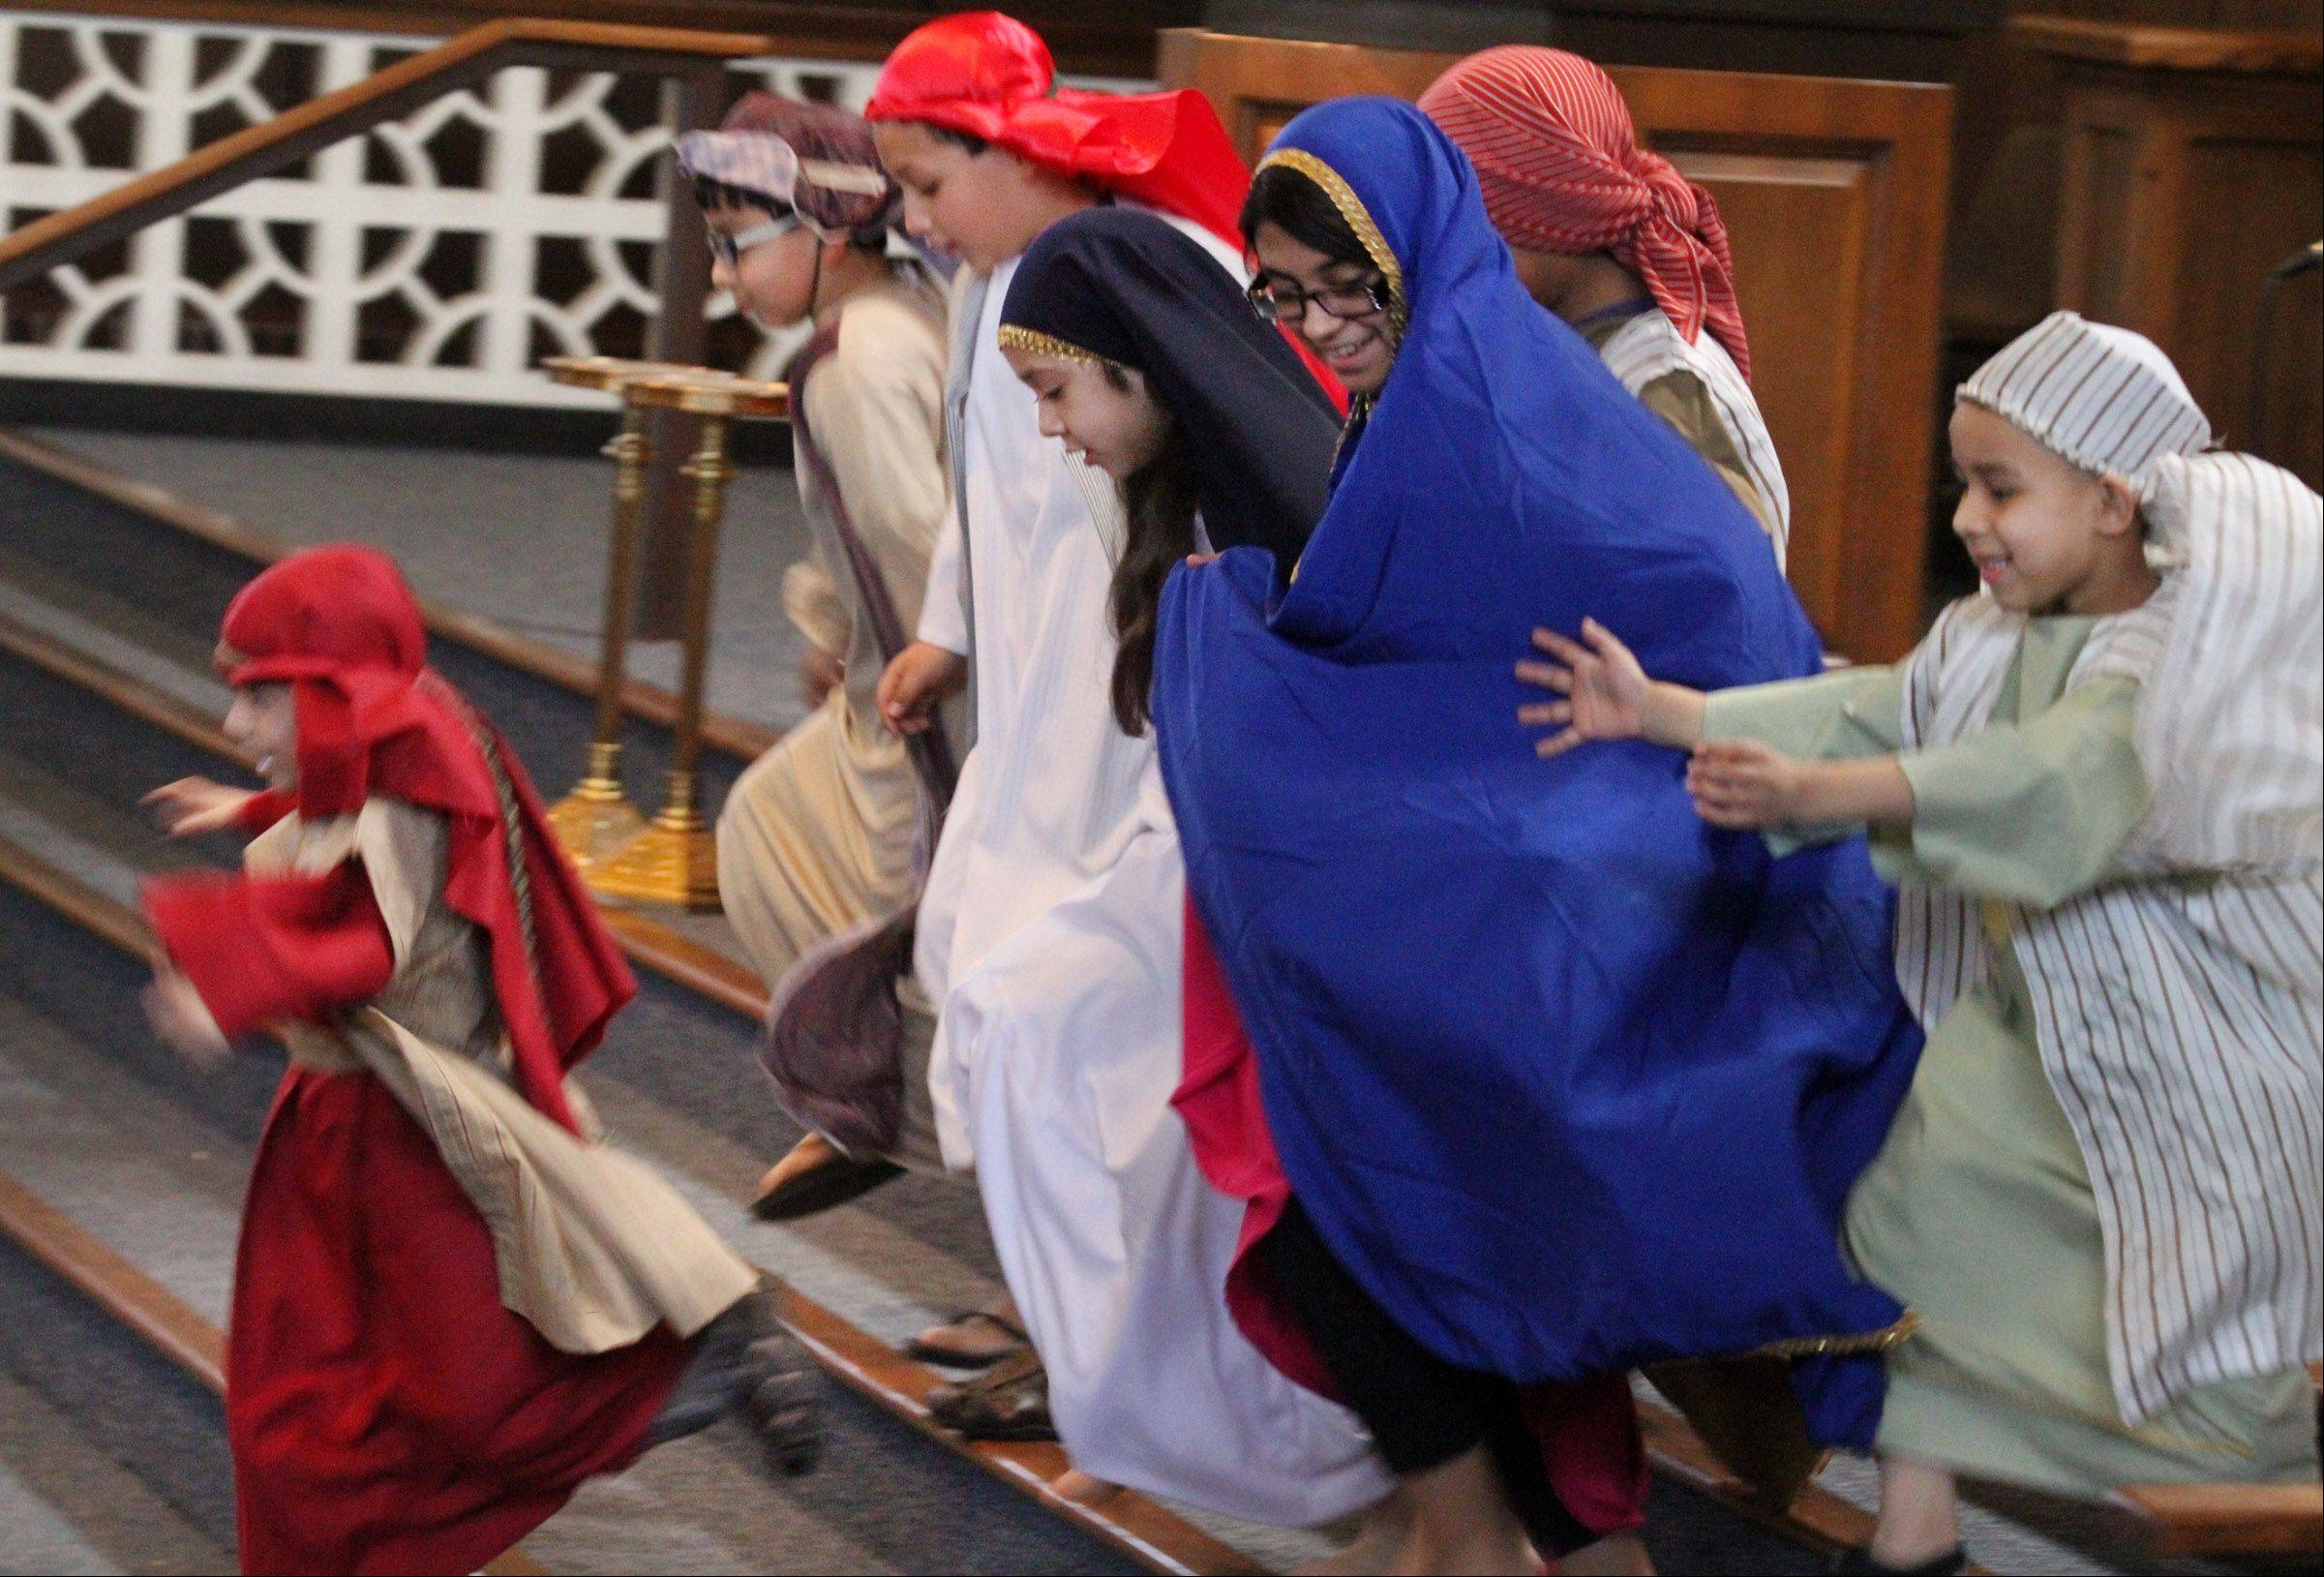 Children run to Jesus during Via Crucis, or Way of the Cross, at Santa Maria del Popolo Catholic Church in Mundelein on Friday.